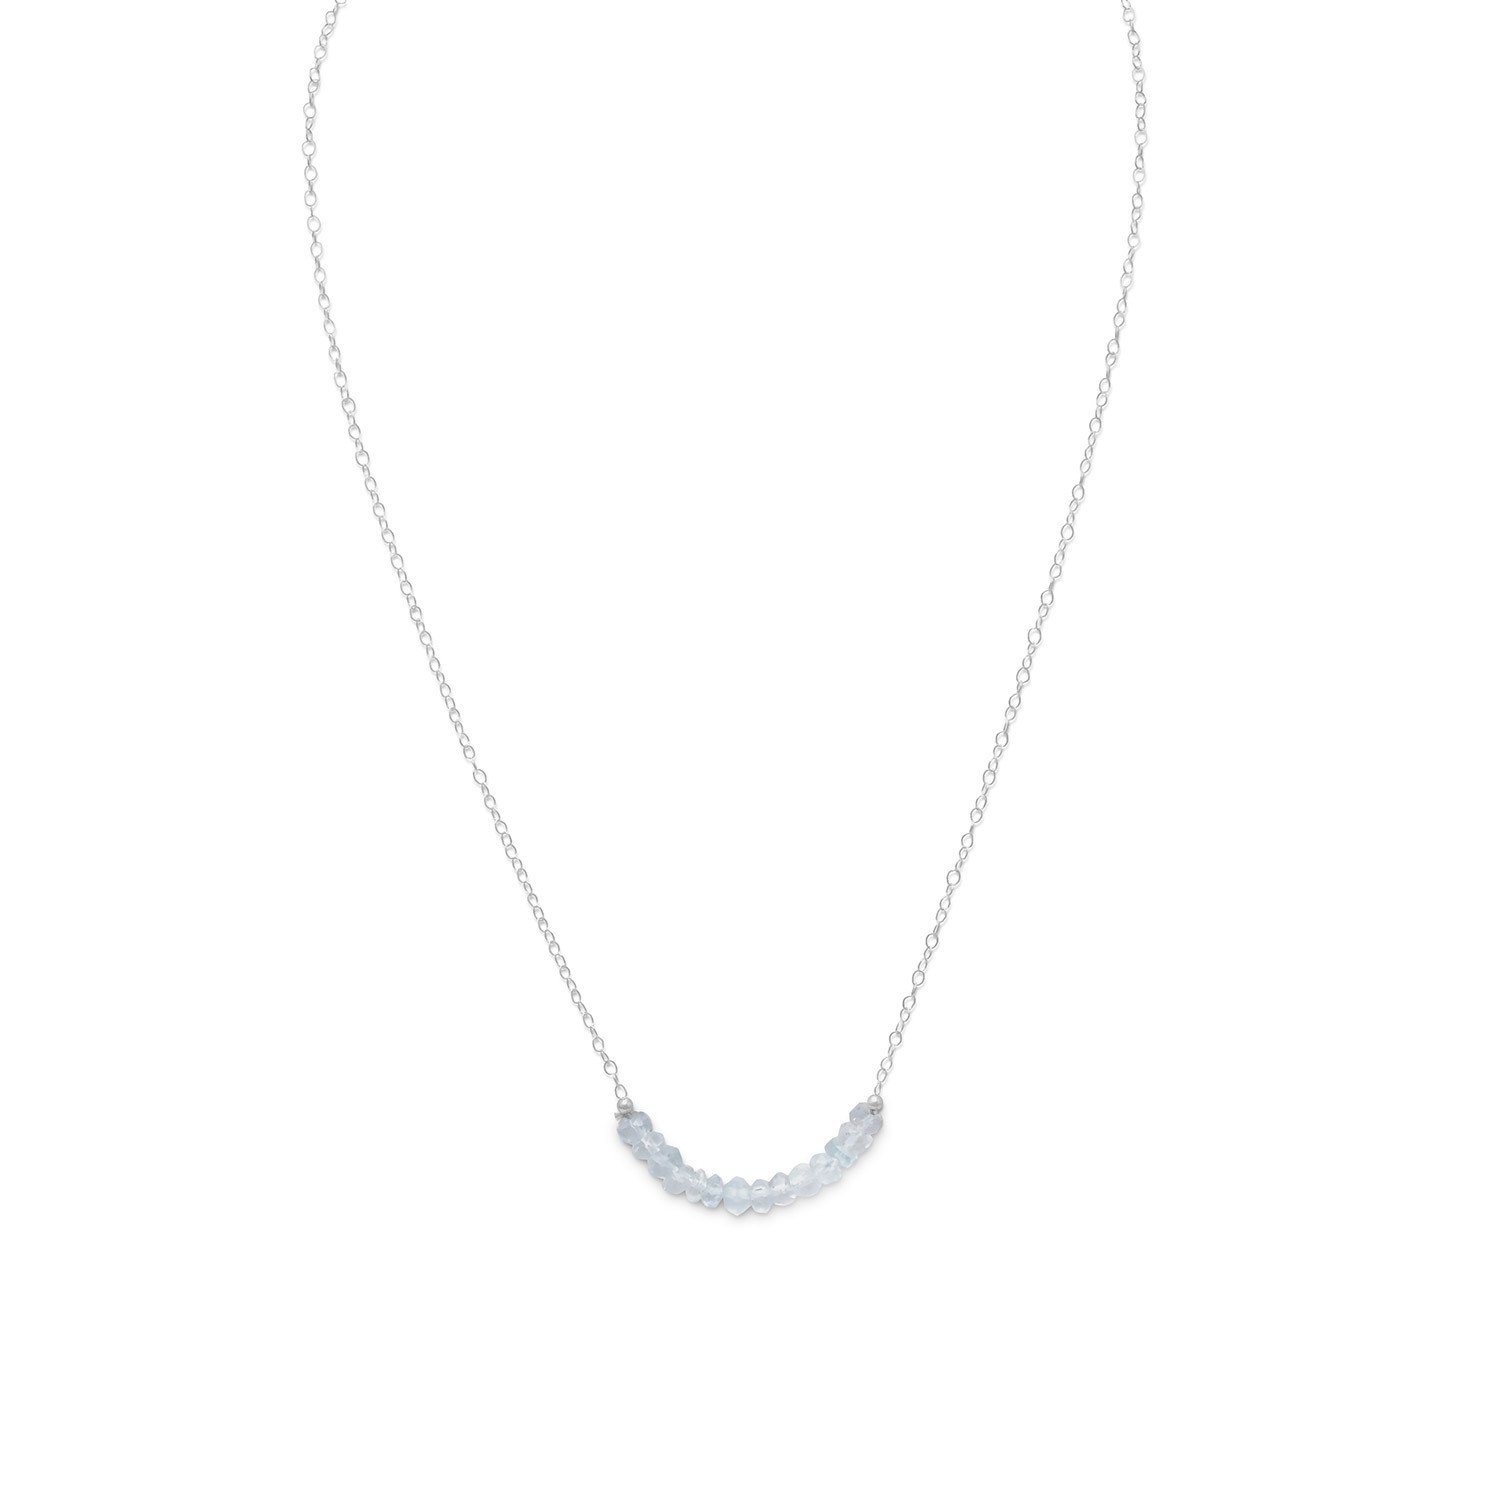 Faceted Aquamarine Bead Necklace – March Birthstone